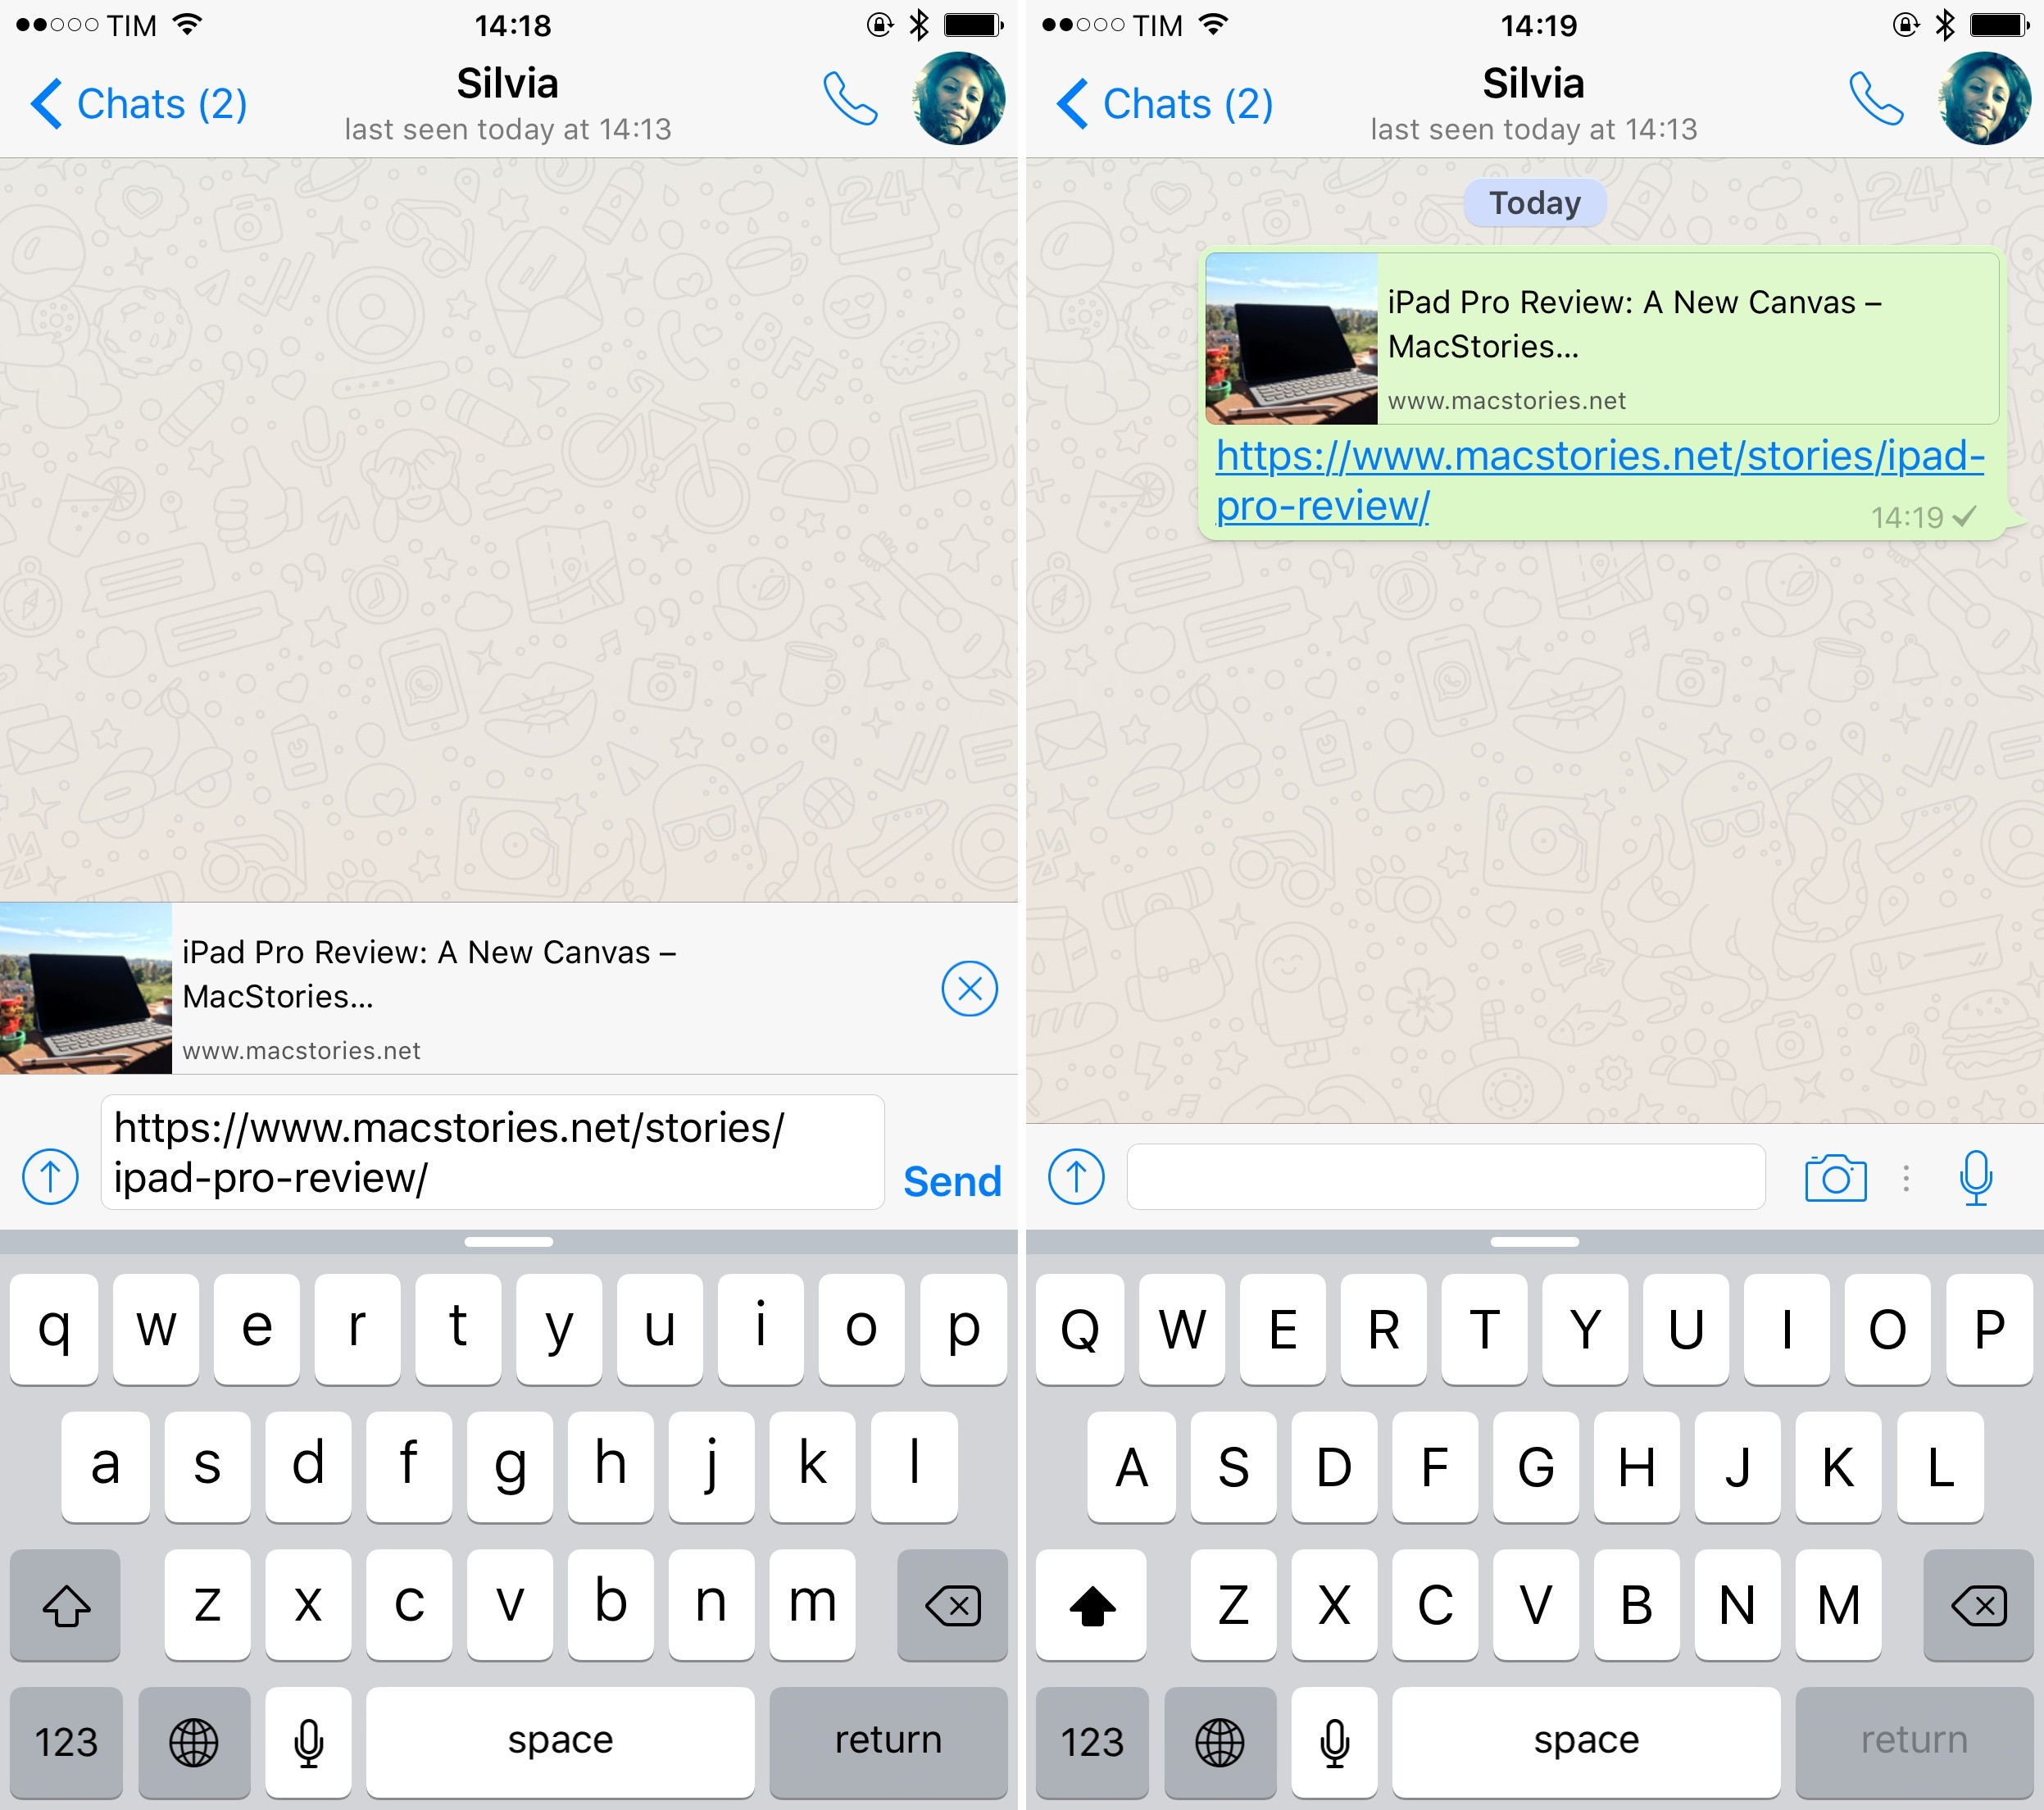 A link preview in the new WhatsApp for iPhone.